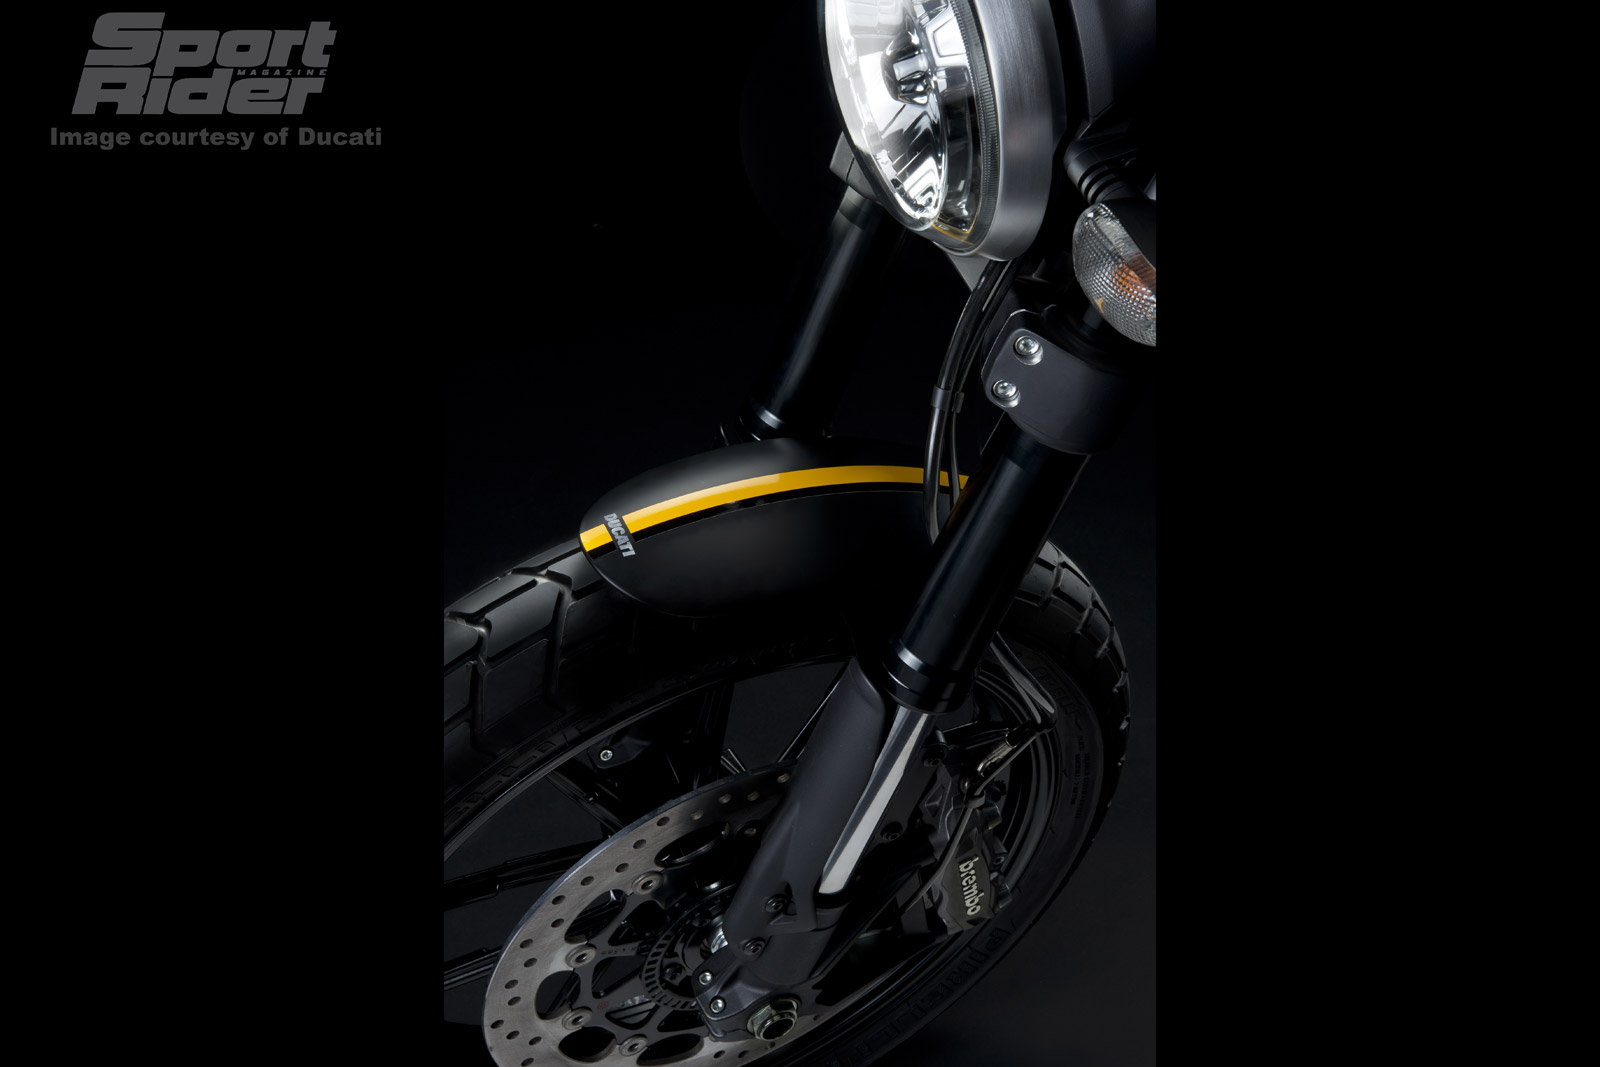 2015 Ducati Scrambler First Look | Cycle World